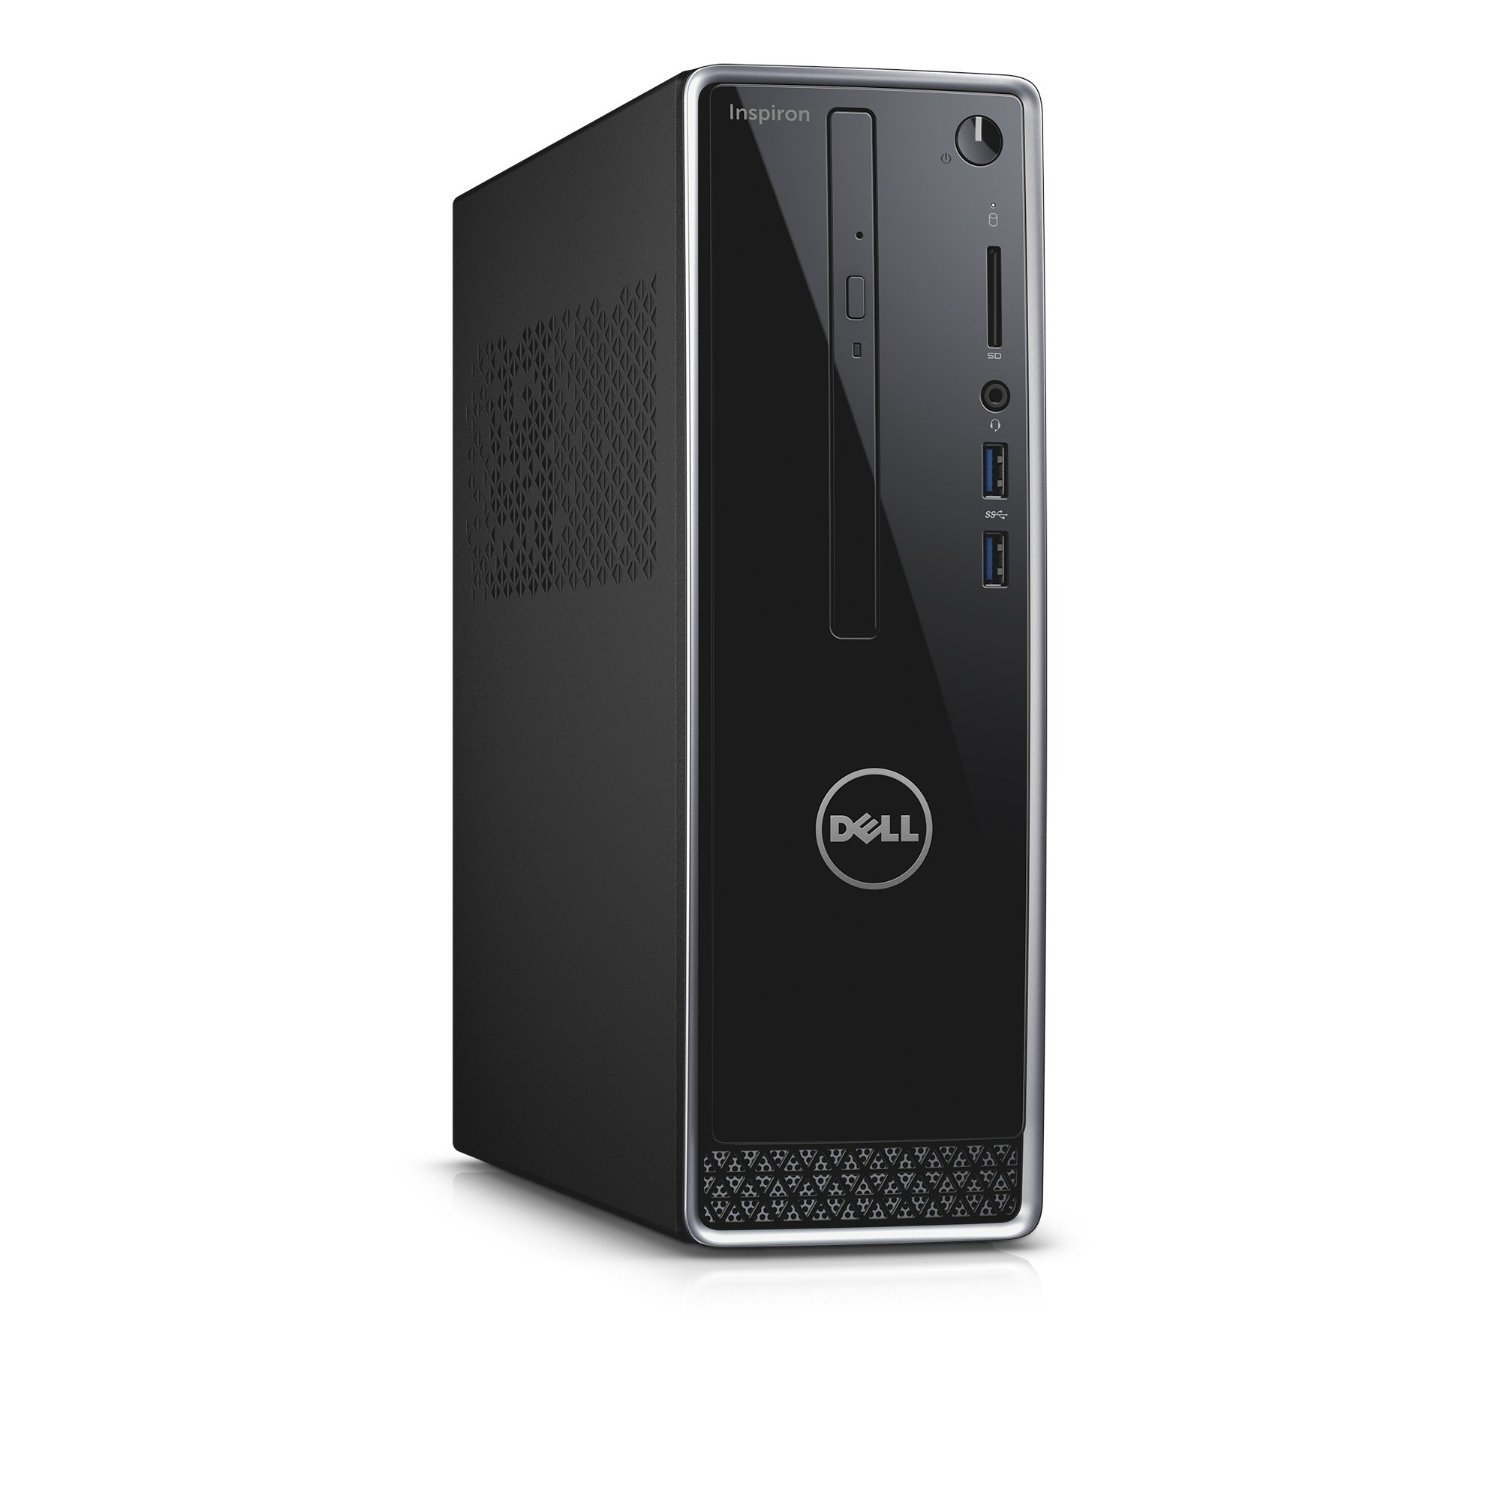 2016 Dell Inspiron i3252 Desktop